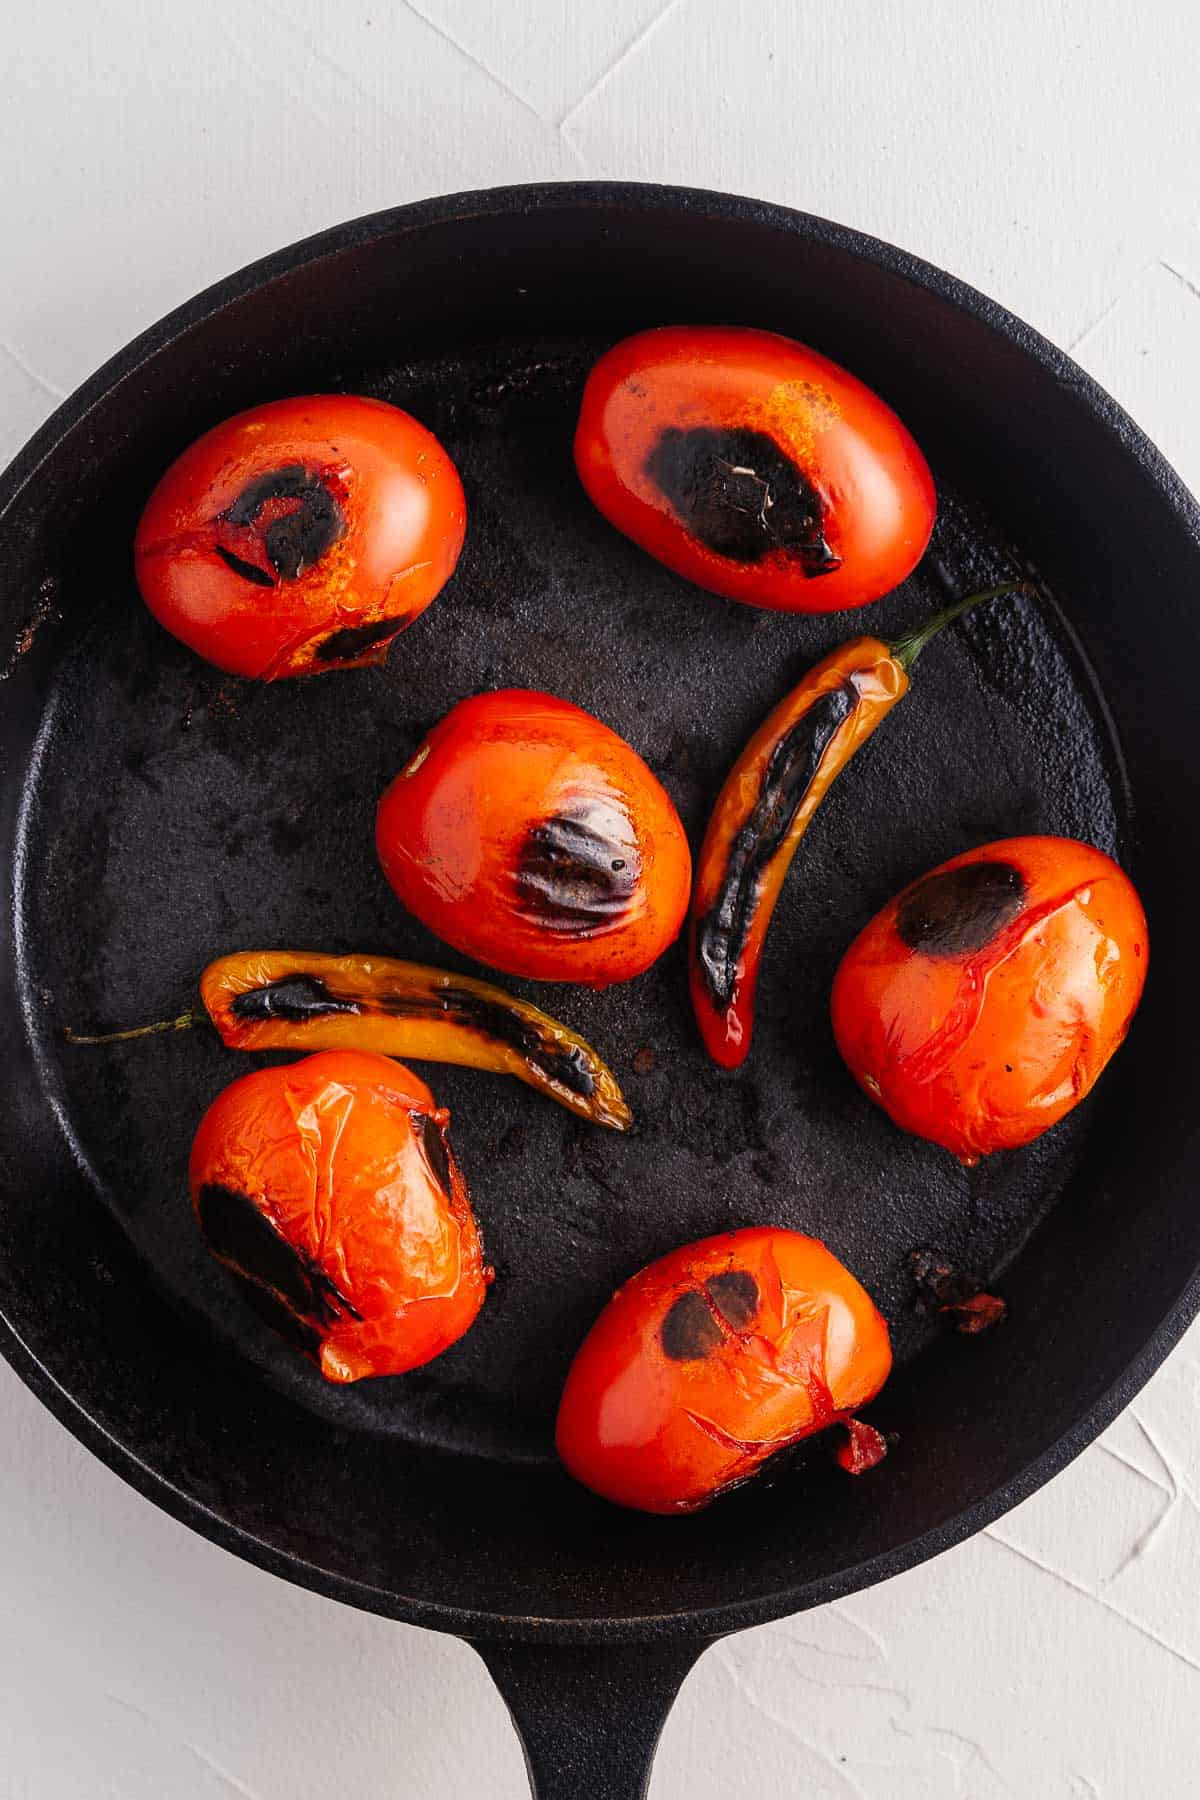 Blackened Tomatoes and Chilies in a Pan